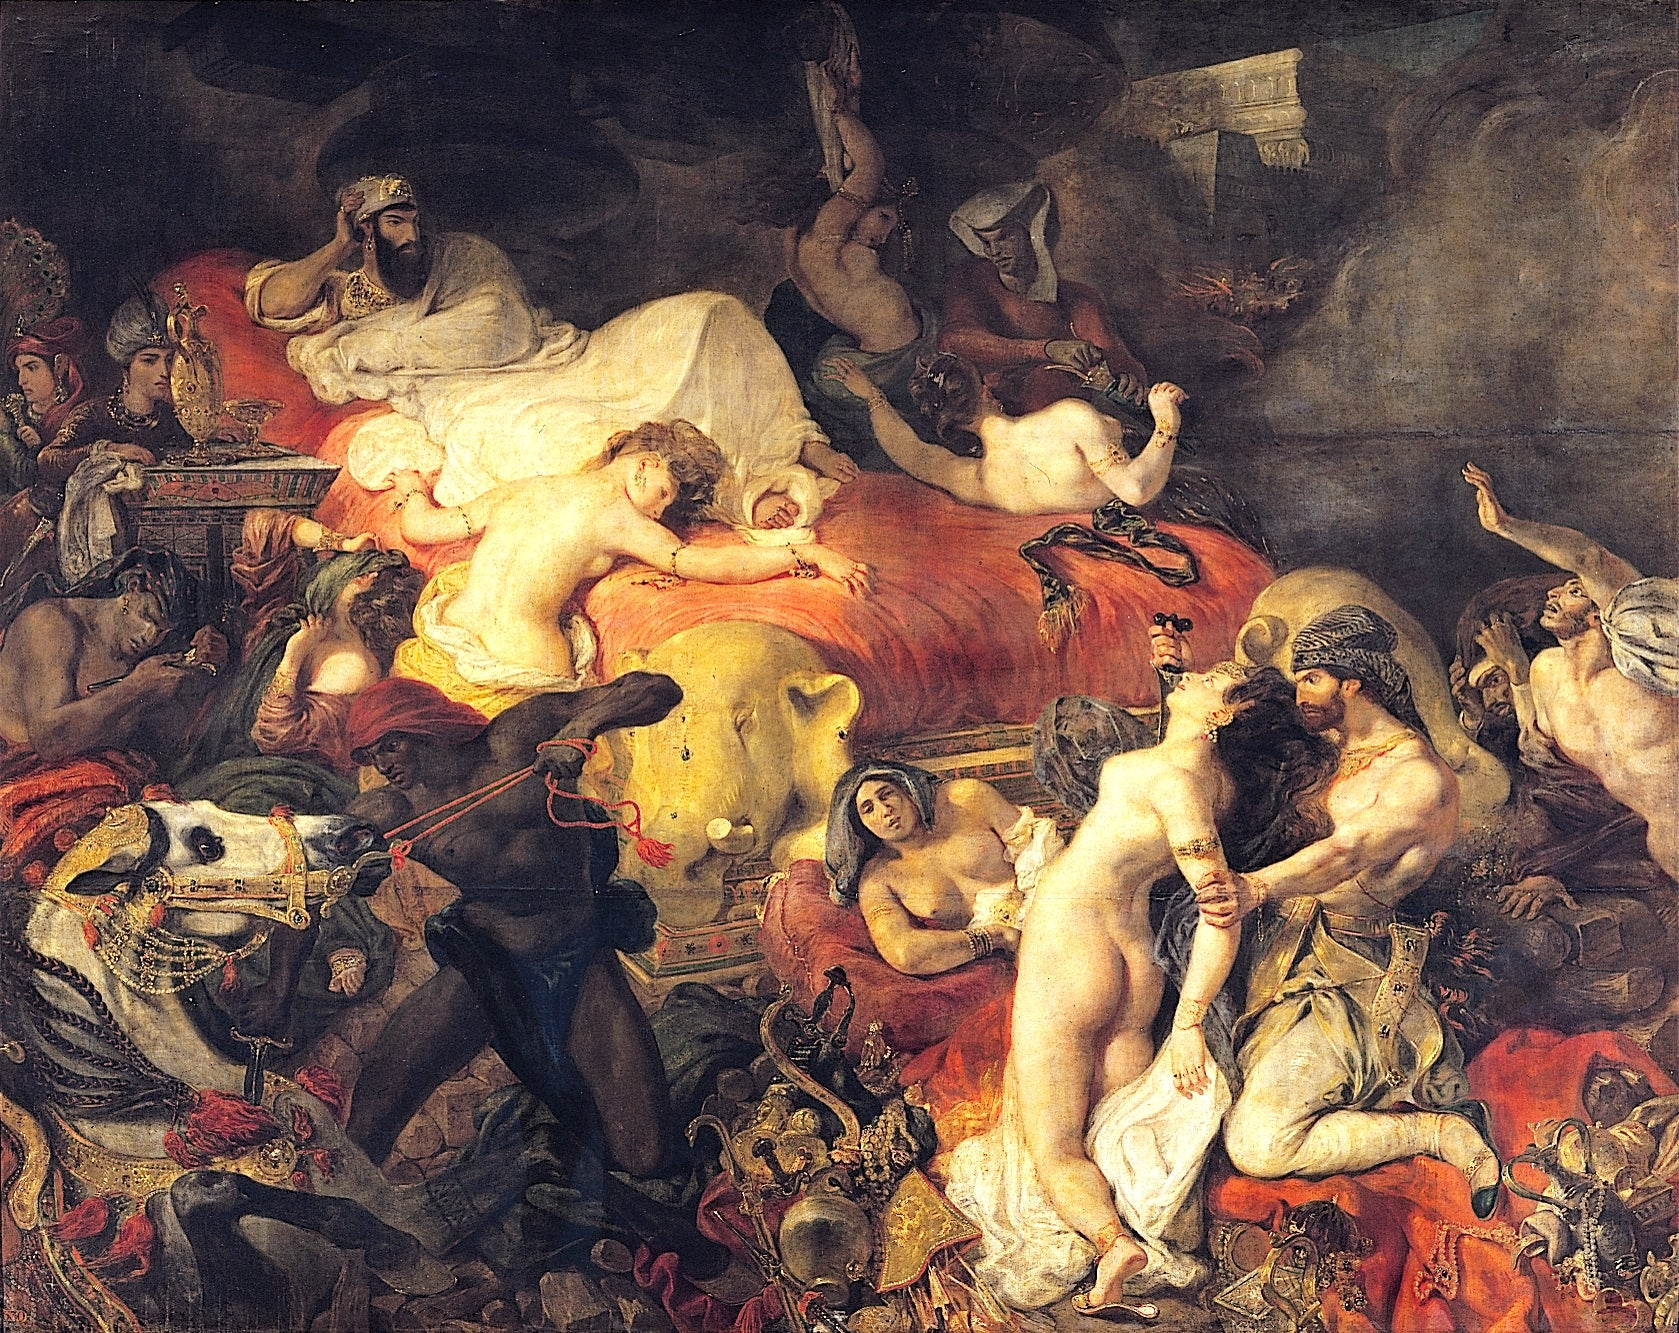 Death of Sardanapalus by Eugène Delacroix Reproduction Painting by Blue Surf Art